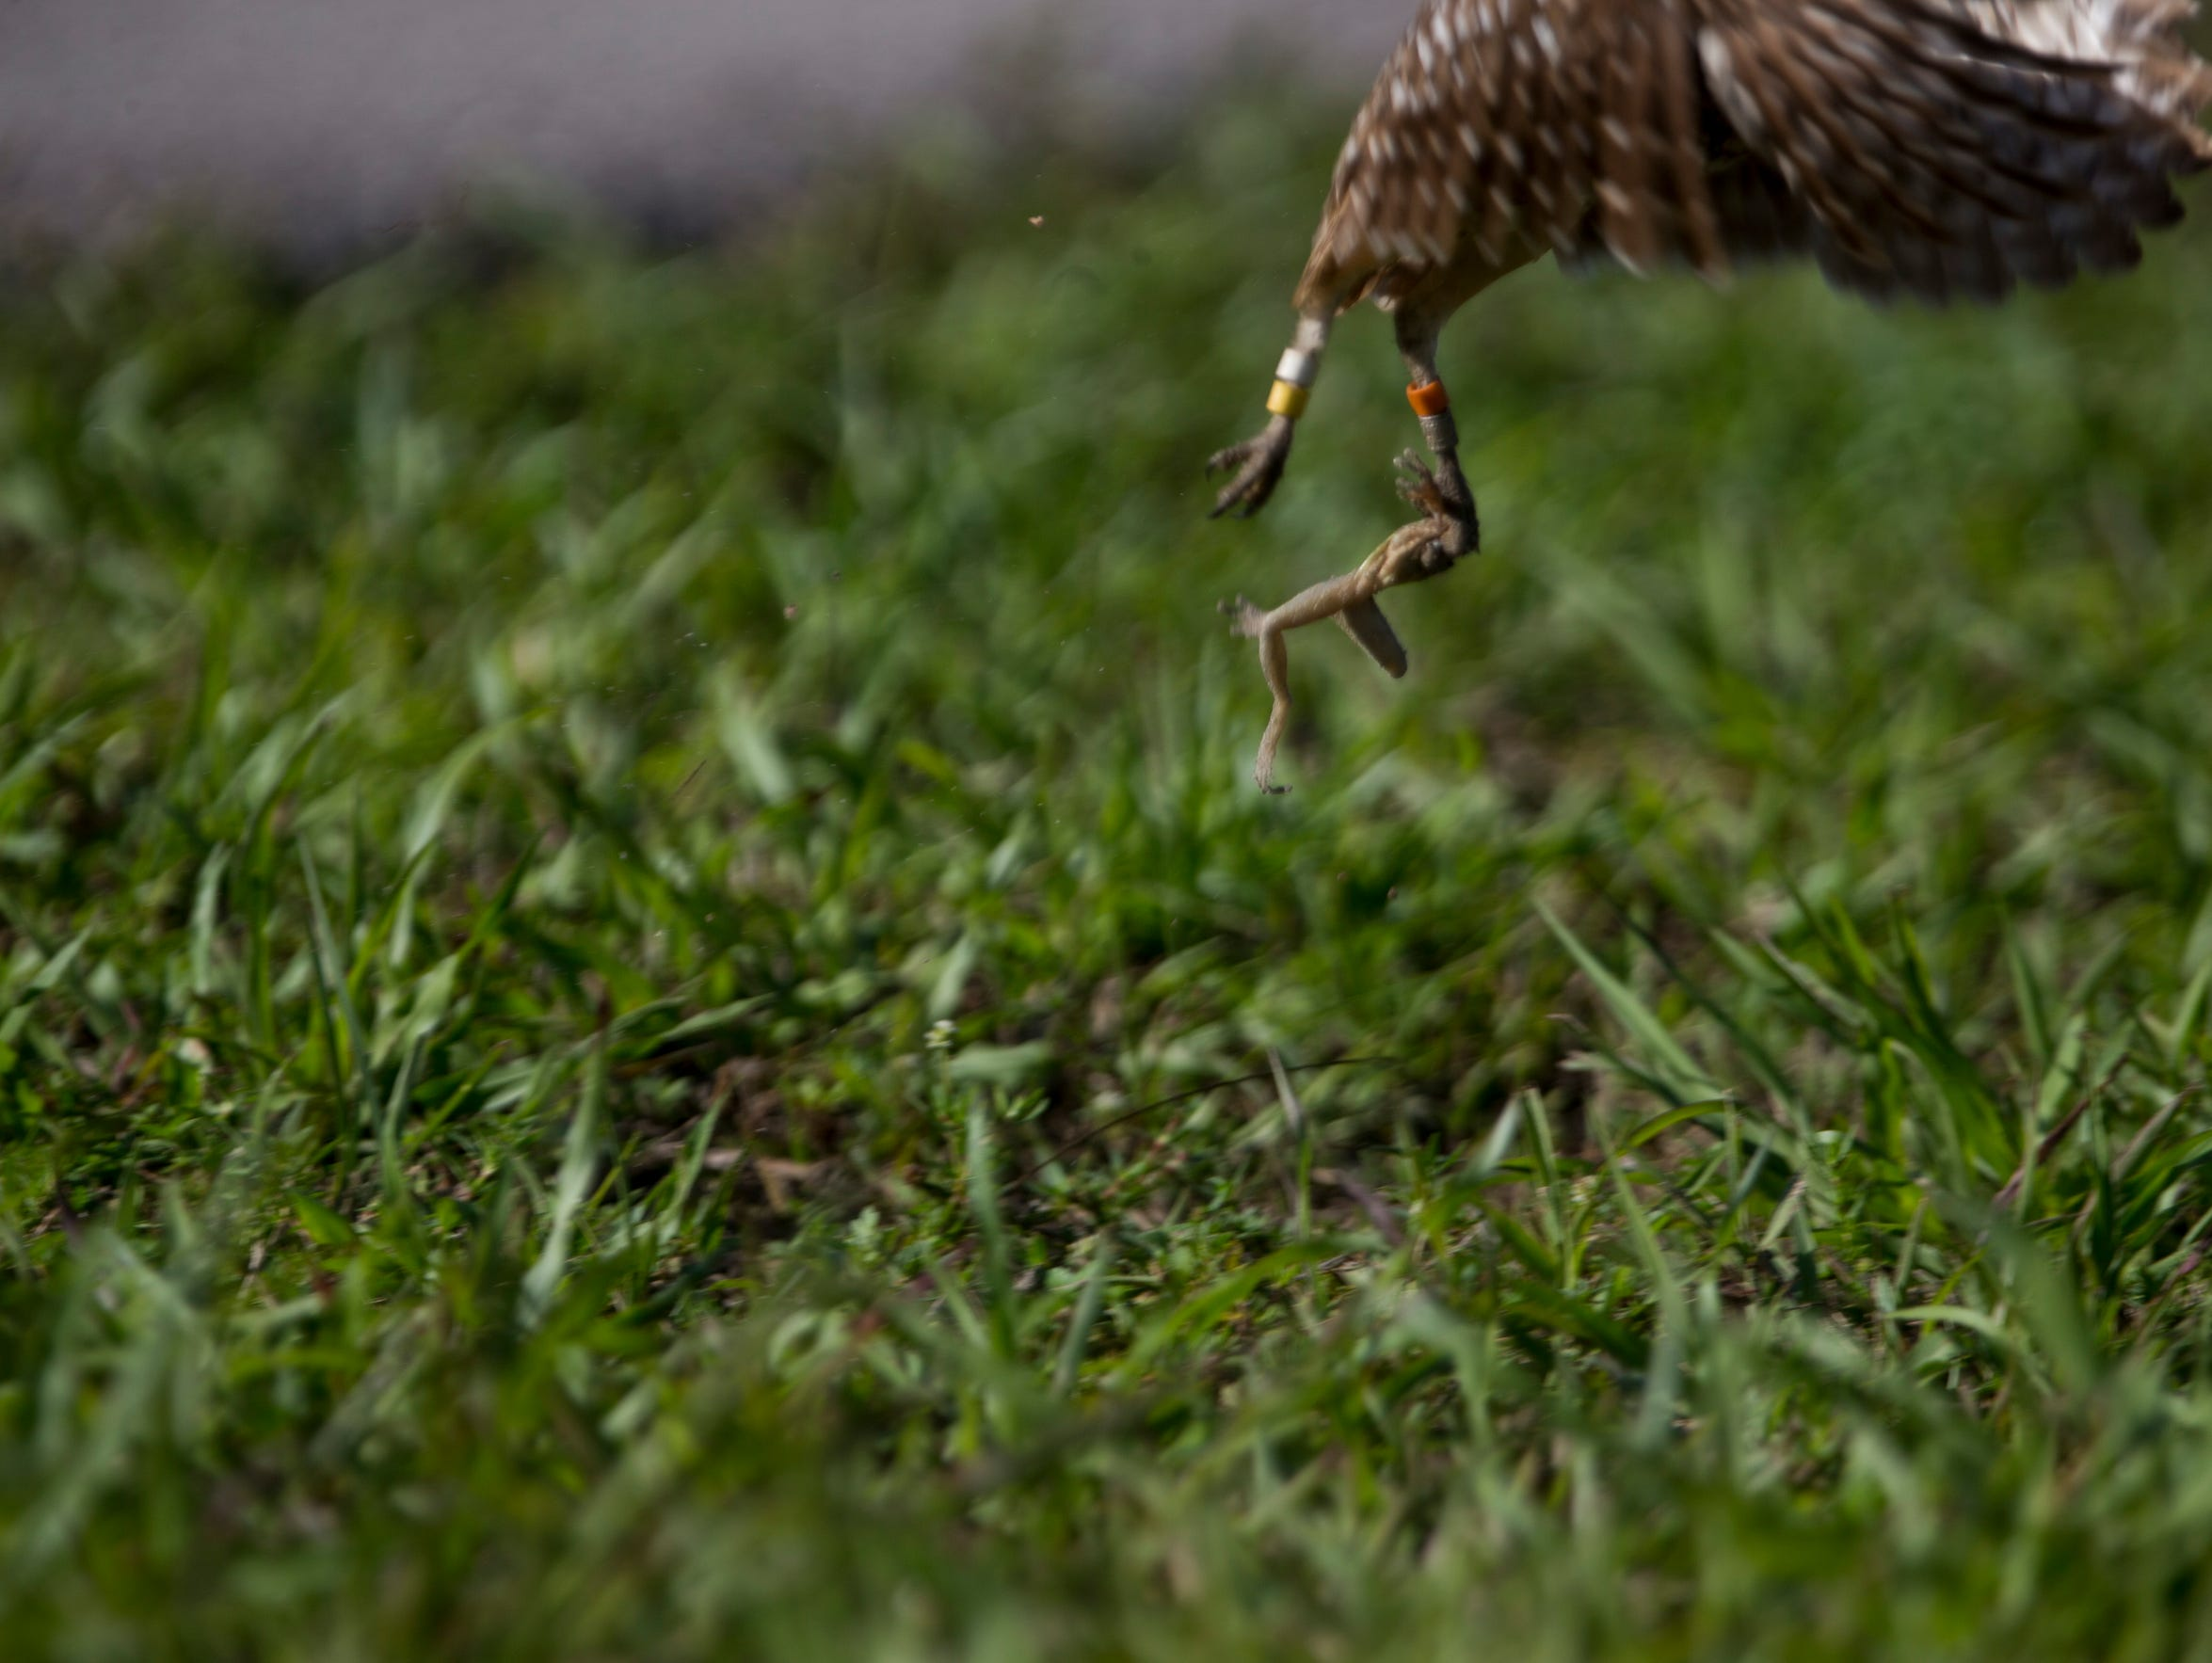 A burrowing owl retrieves the hind legs of a frog,